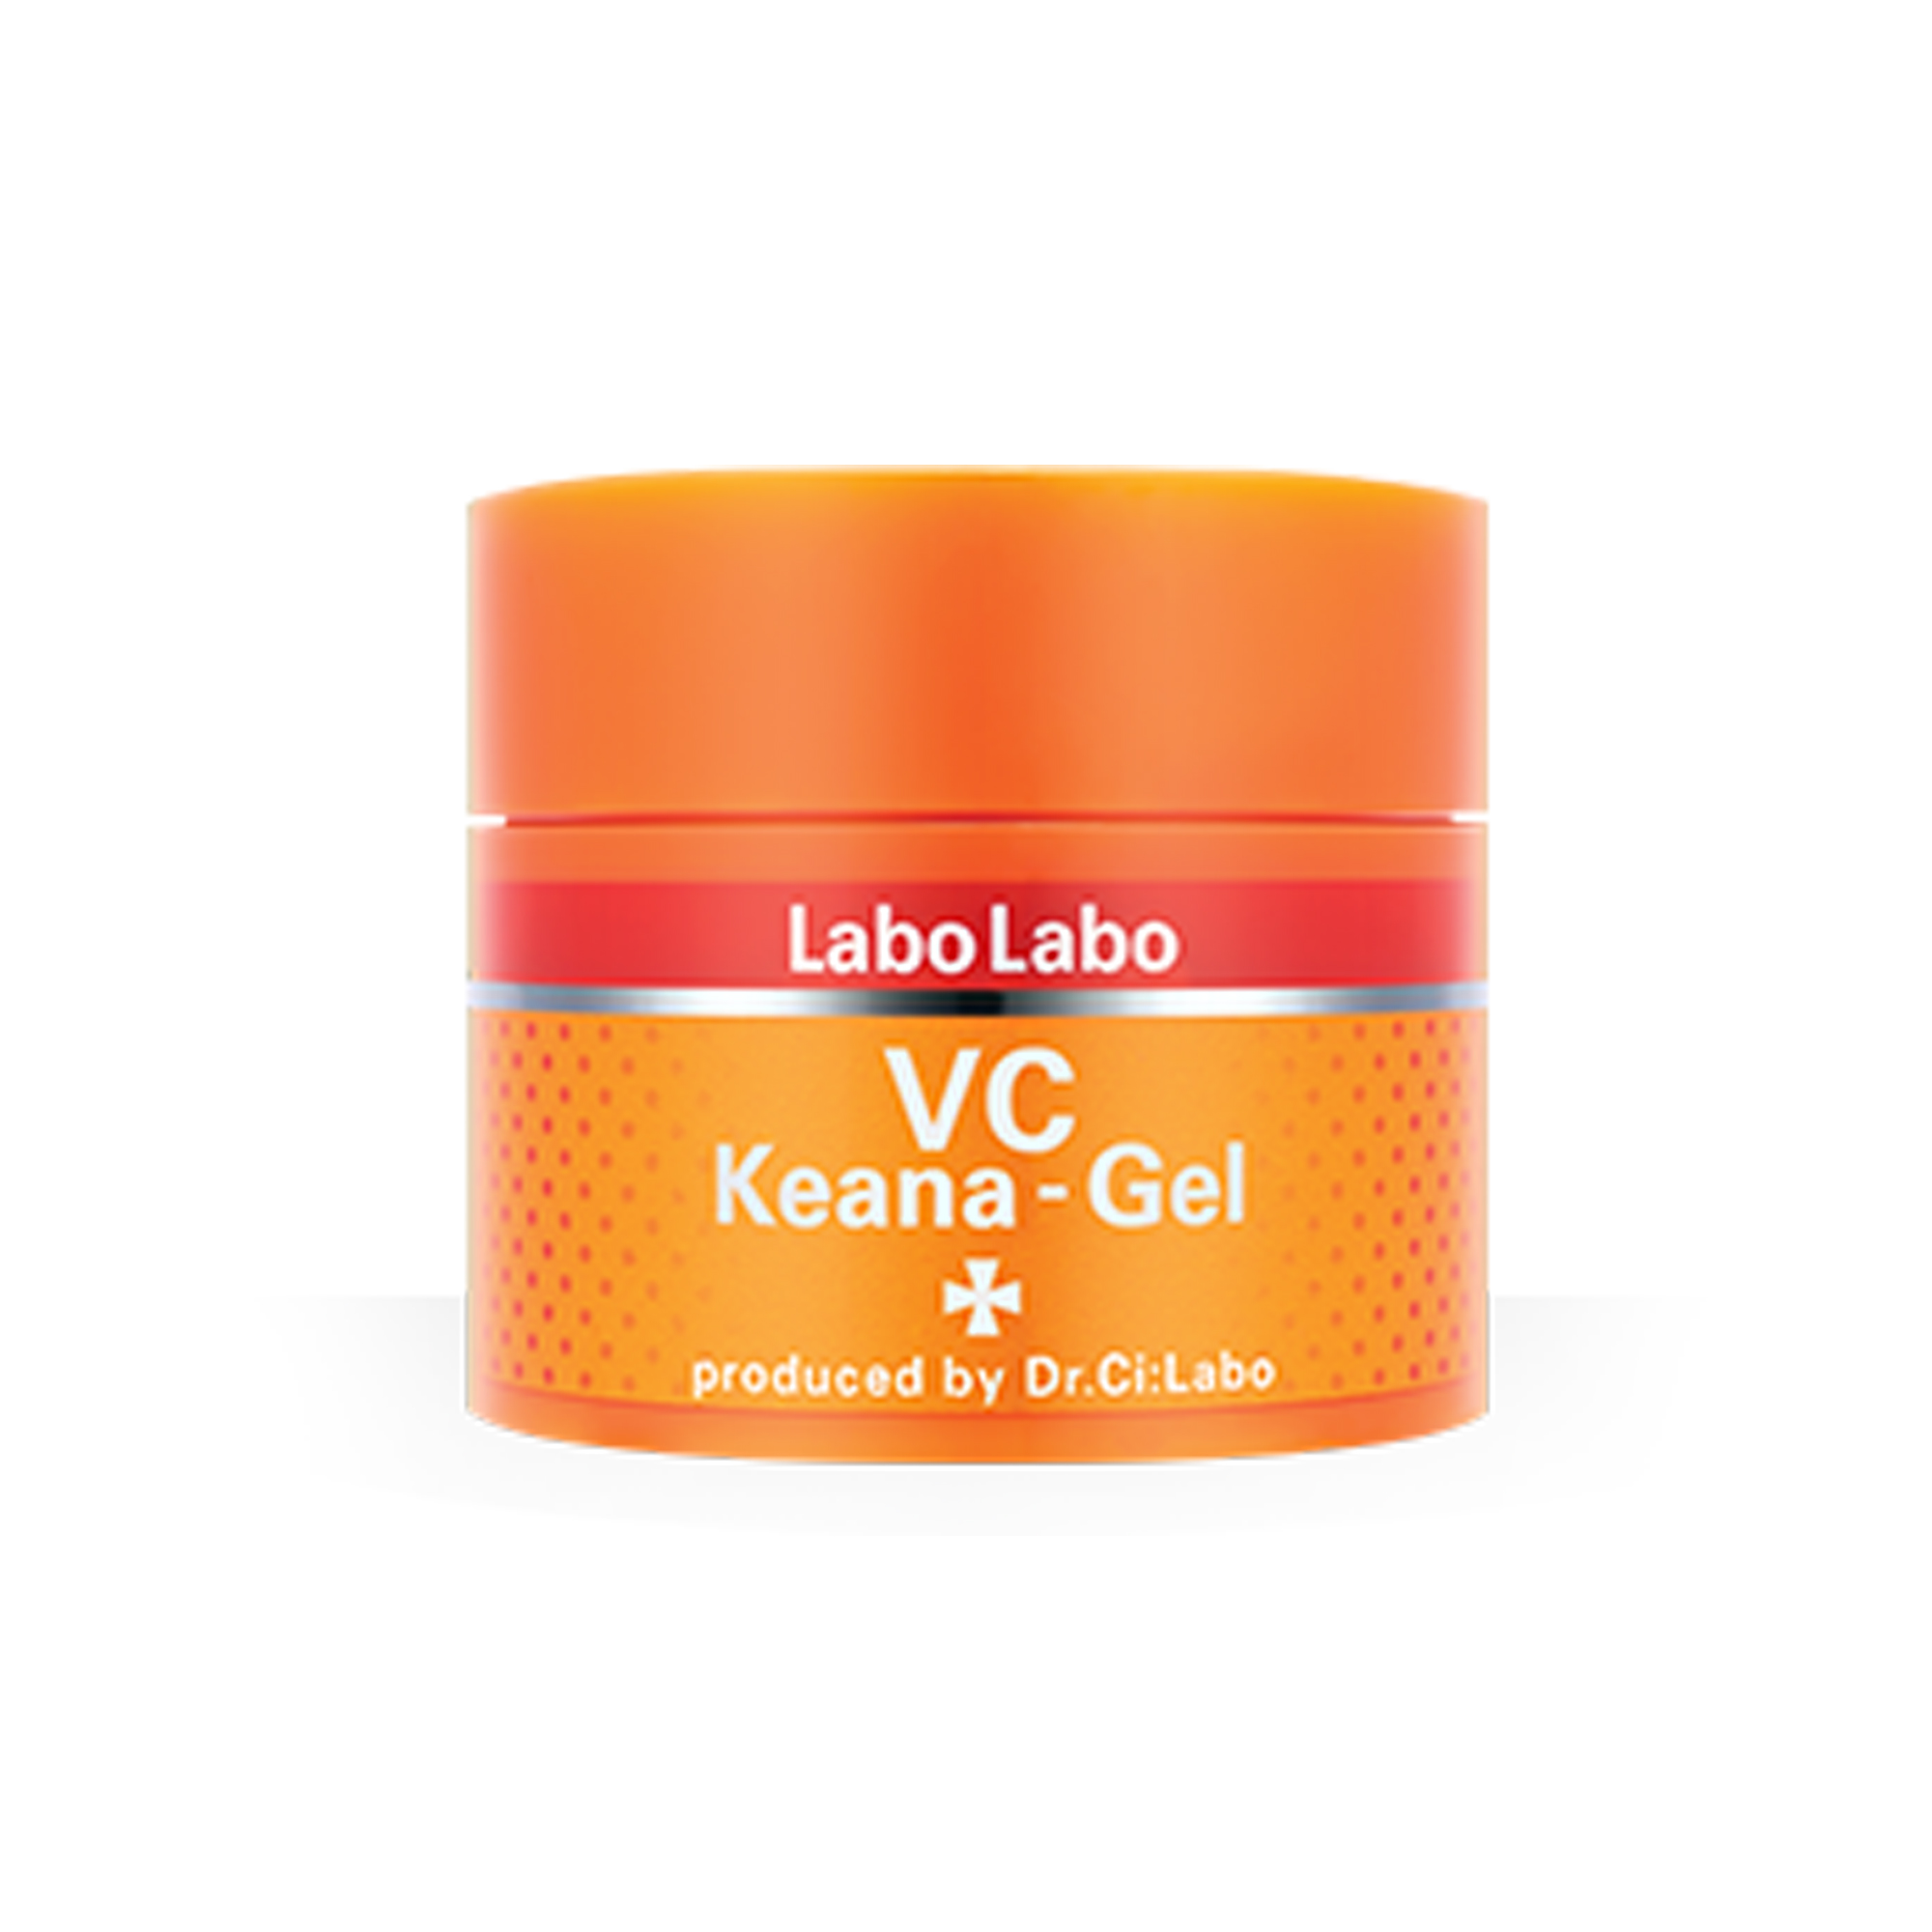 Labo Labo Super Keana Gel